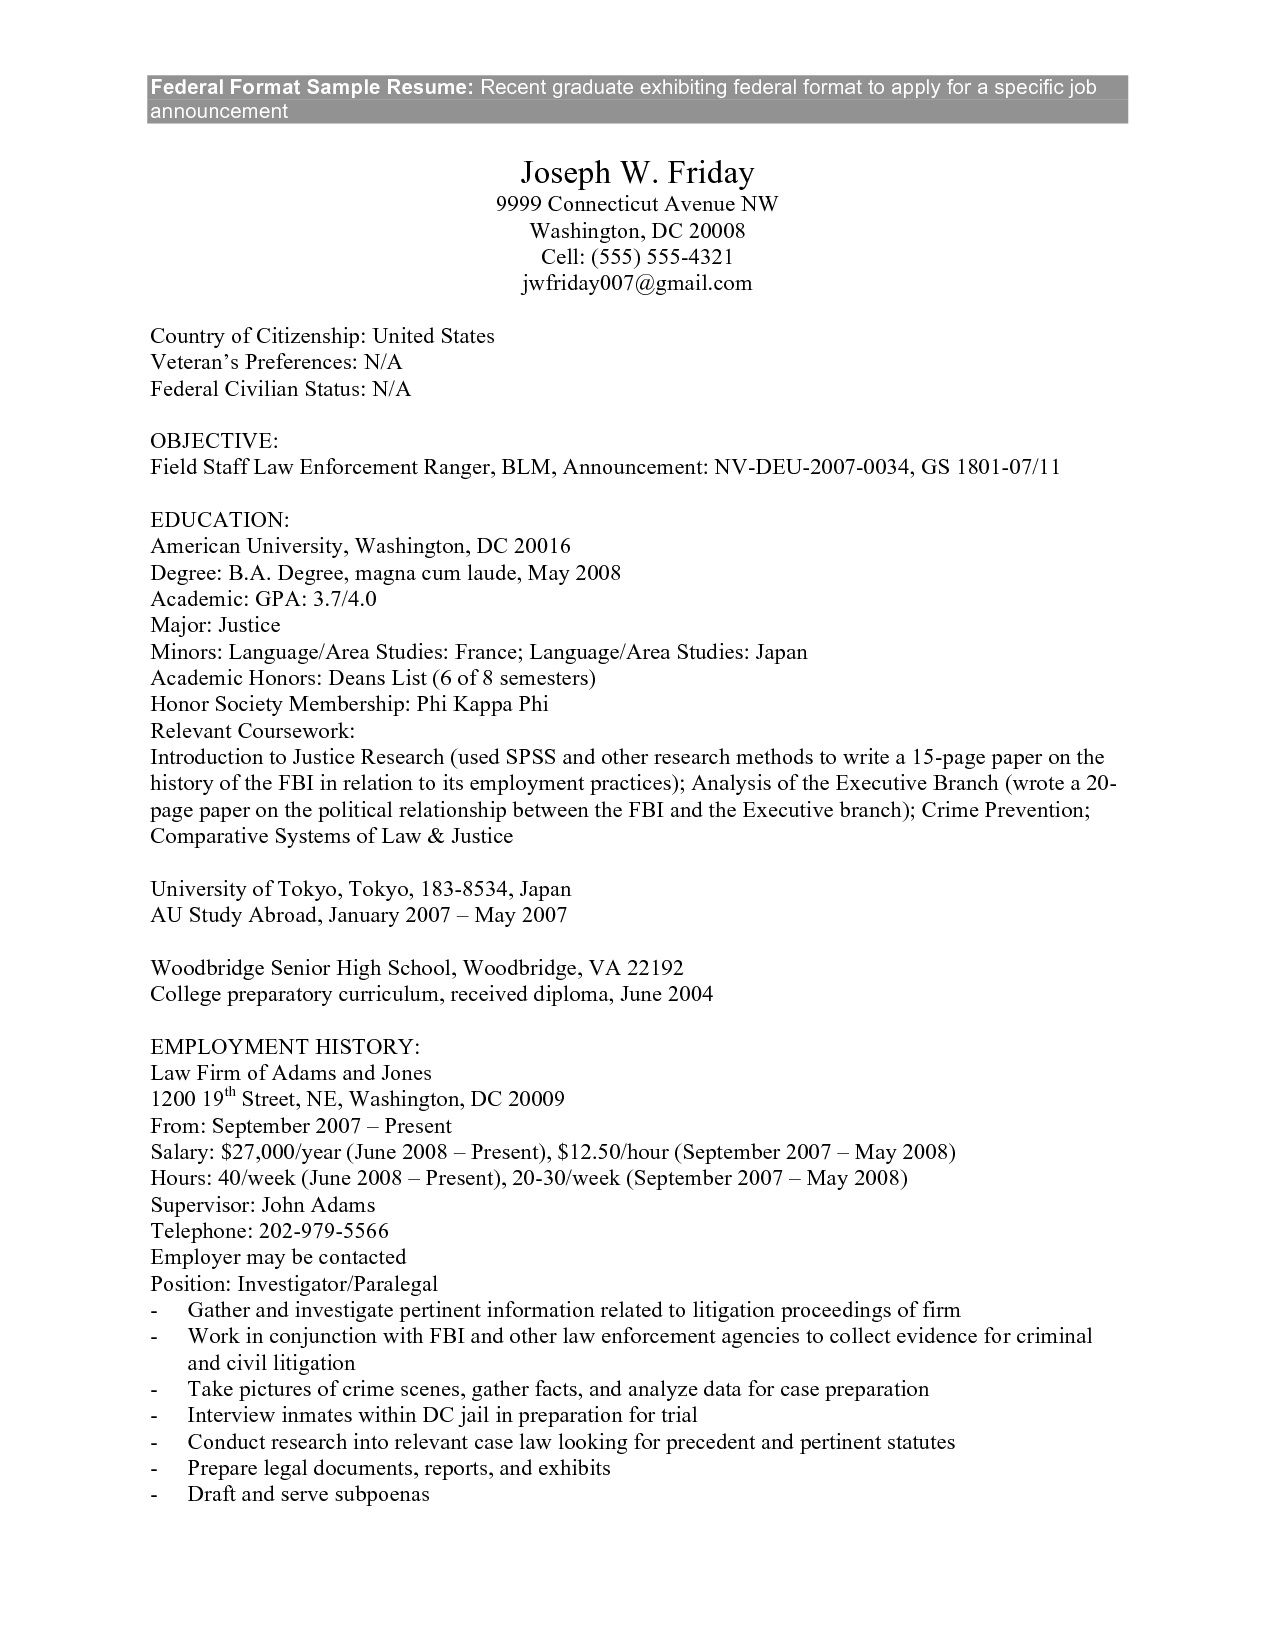 federal government resume example federal government resume example are examples we provide as reference to